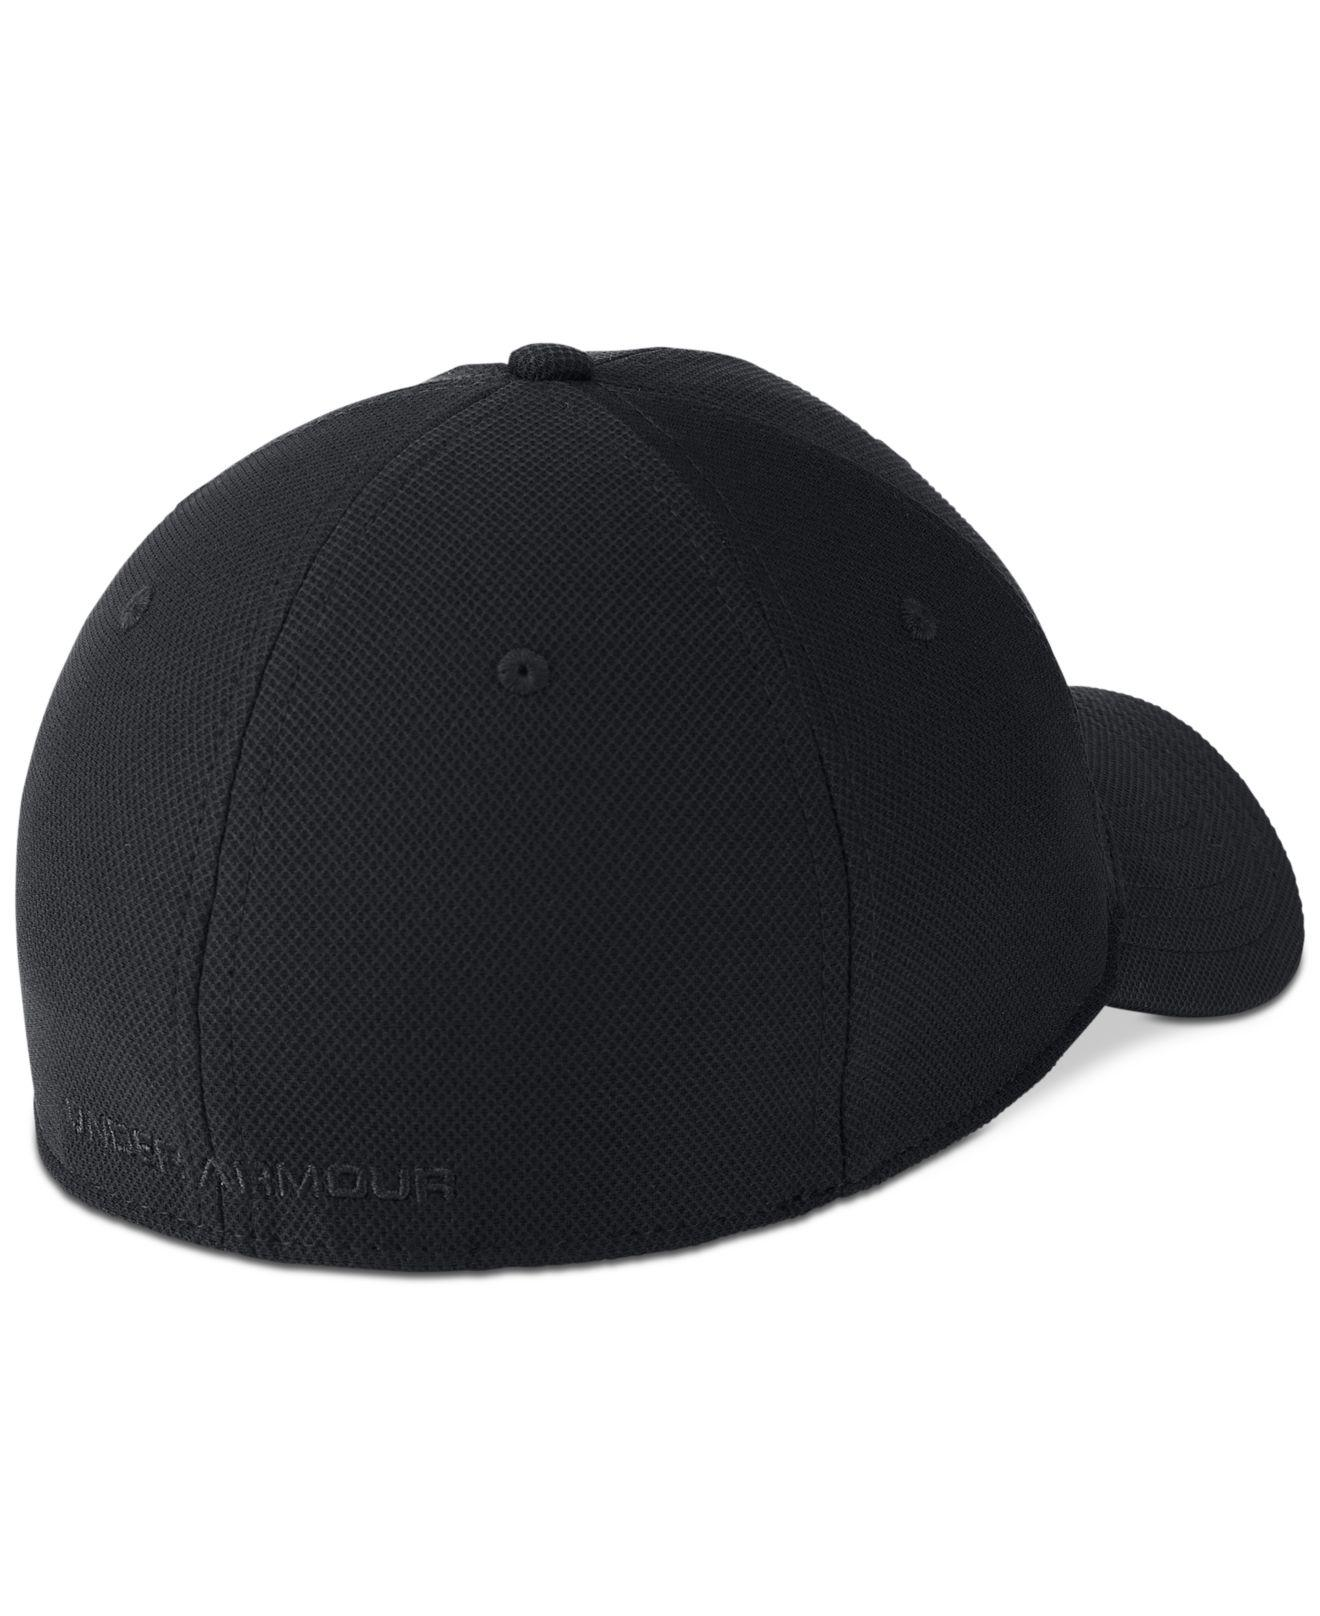 2280d4d45e8 Lyst - Under Armour Blitzing 3.0 Cap in Black for Men